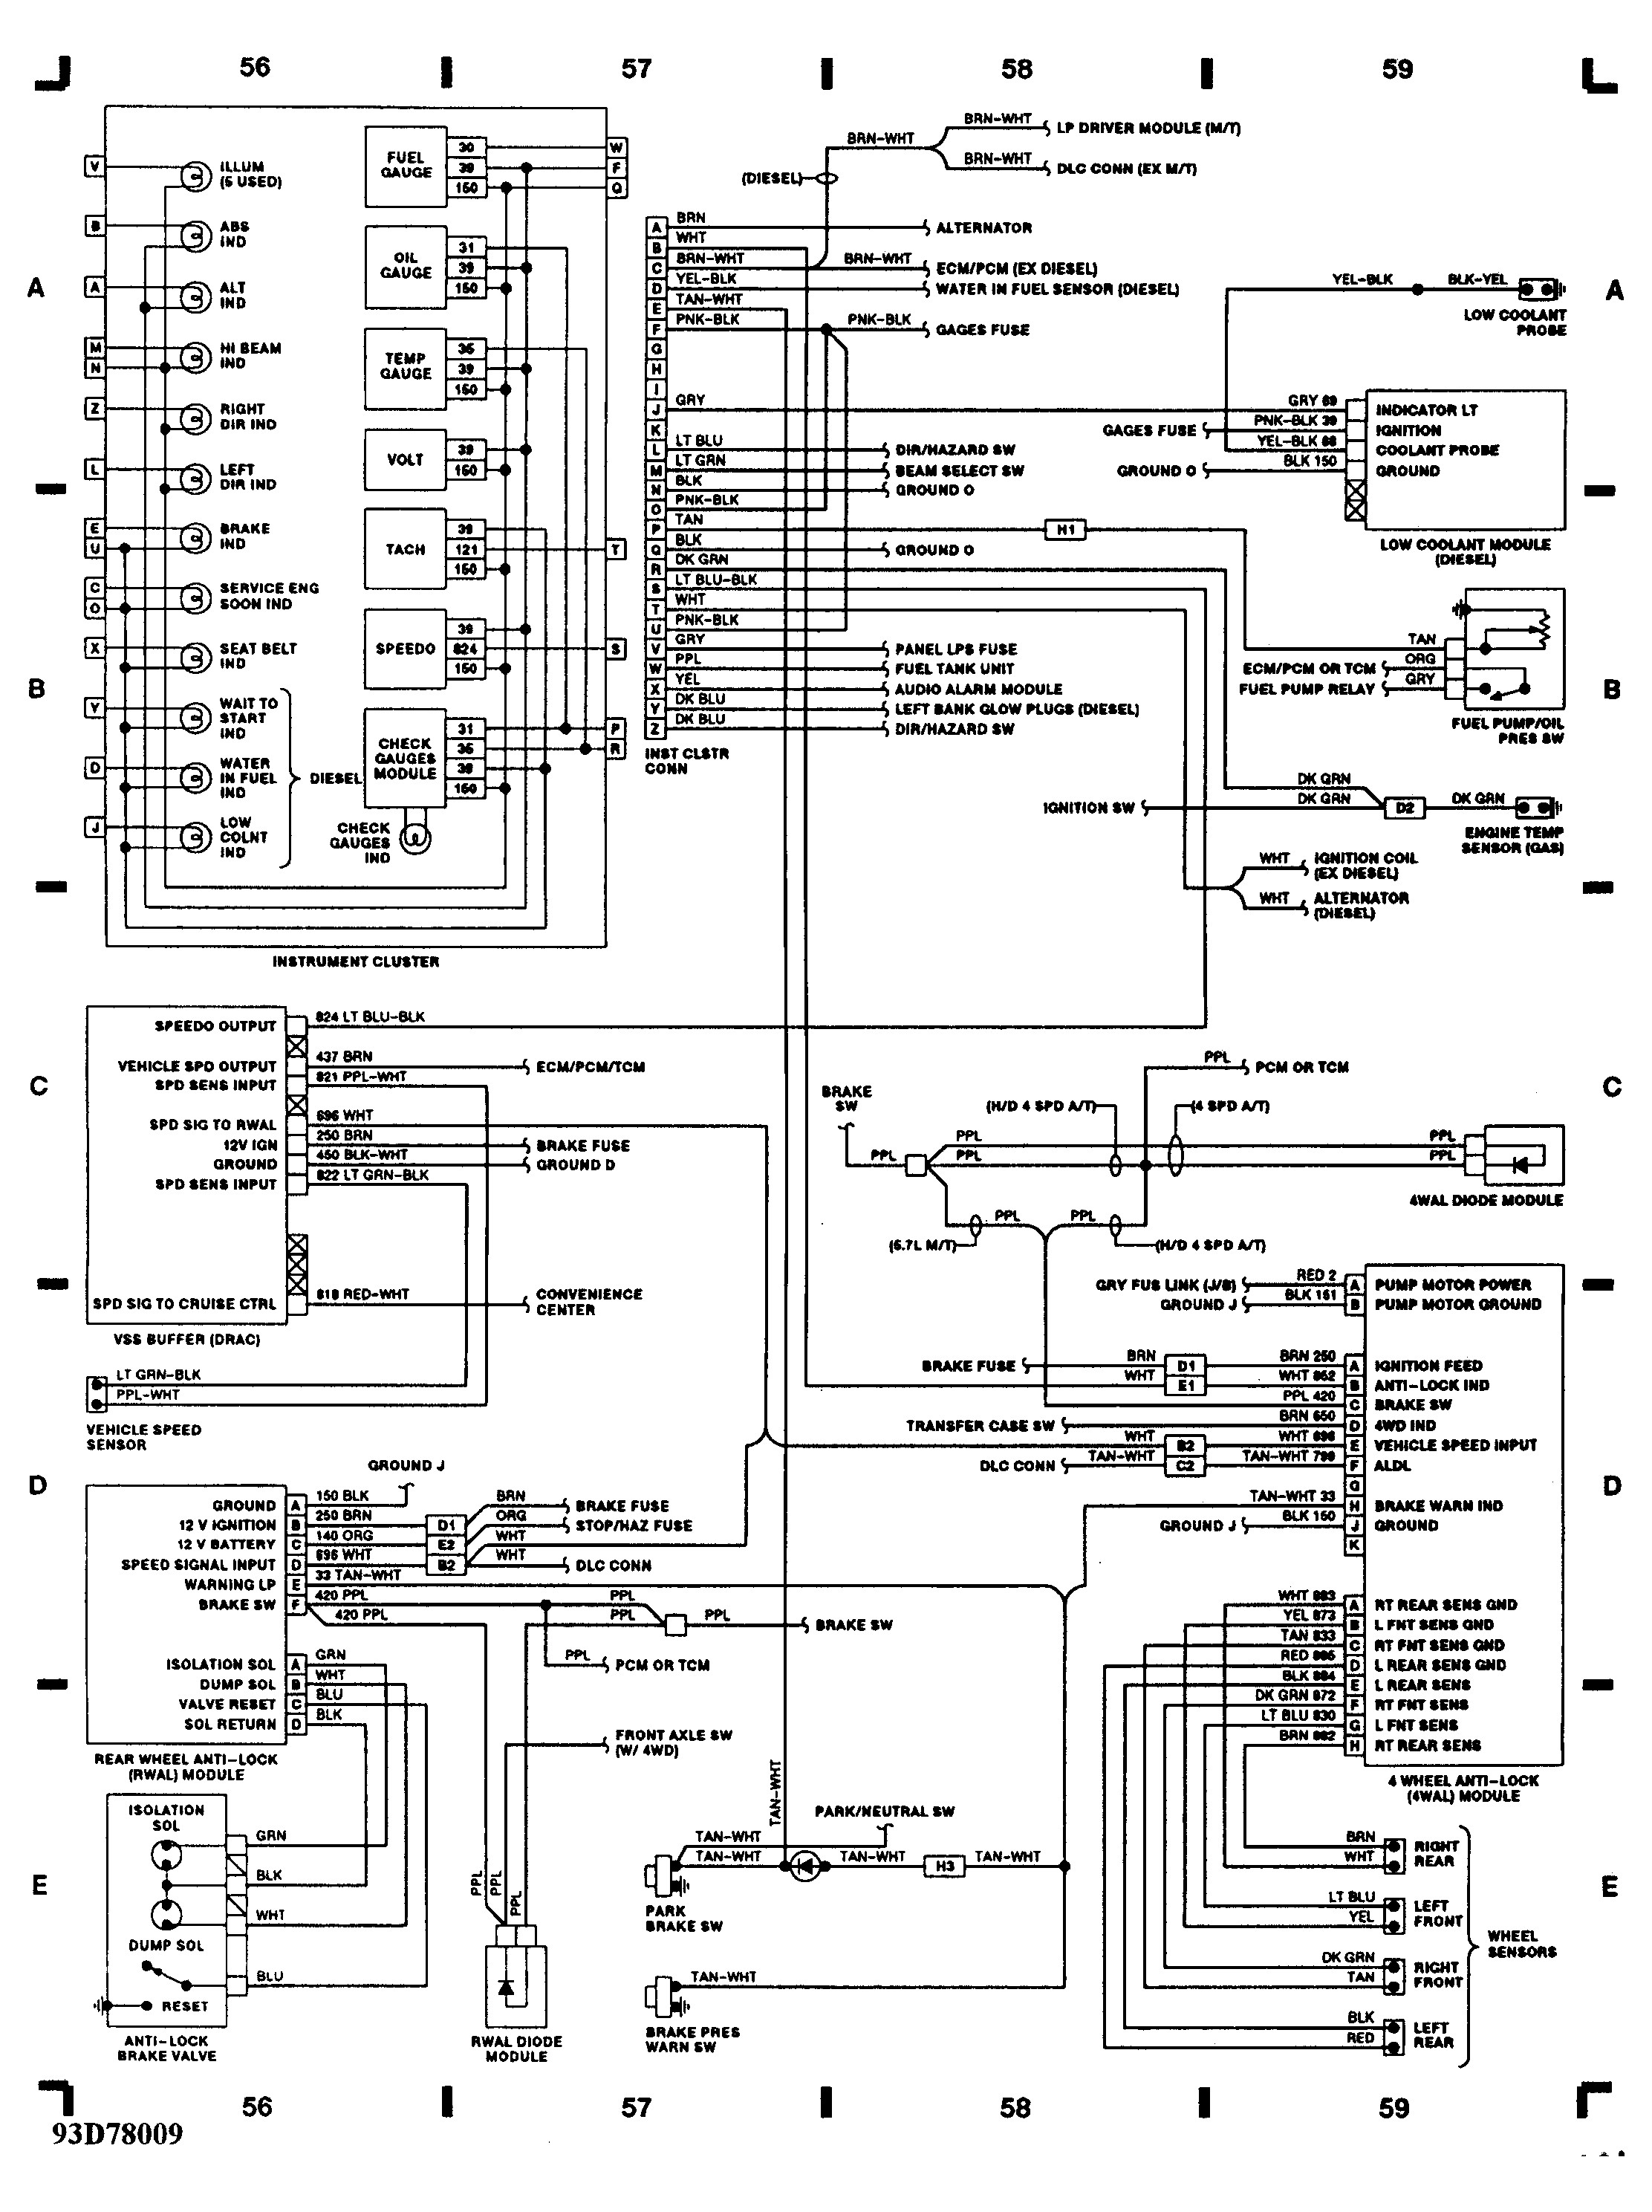 1994 chevy truck wiring diagram free Download-5 7 vortec wiring harness diagram wiring diagram rh visithoustontexas org 1993 chevy silverado 1500 wiring harness 1993 chevy silverado 1500 wiring 9-e